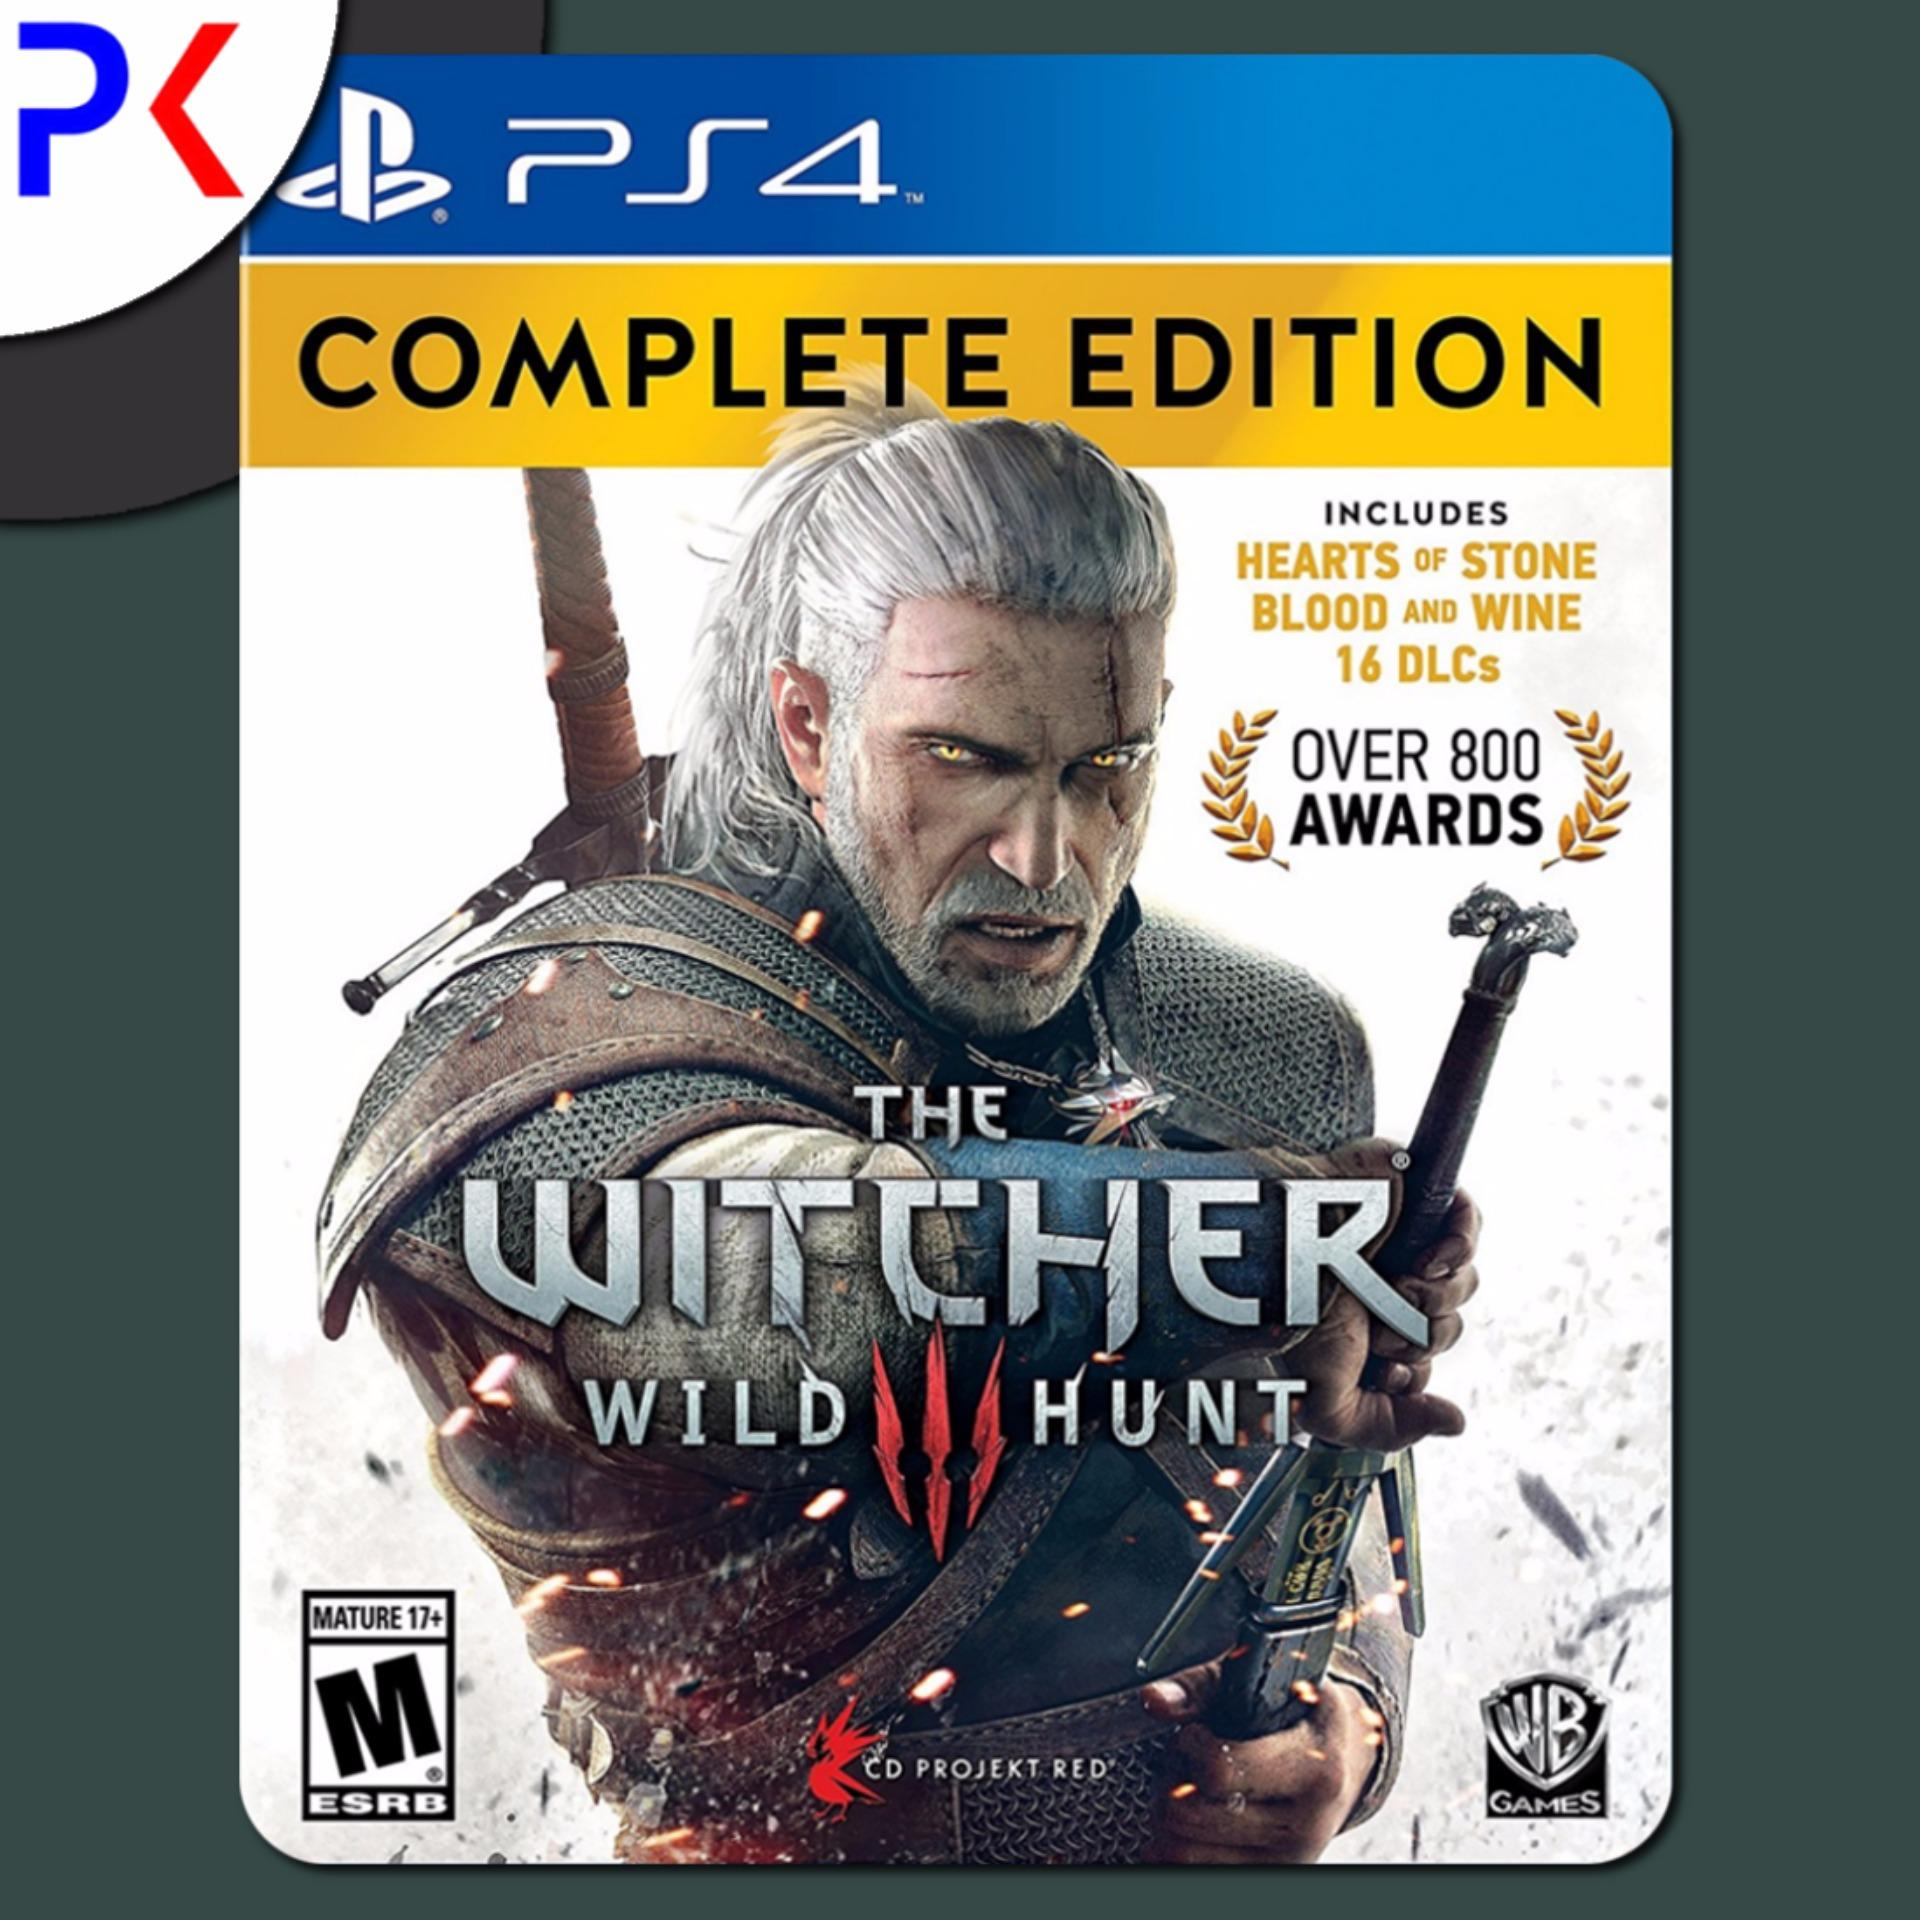 PS4 The Witcher 3: Wild Hunt Complete Edition (R1)